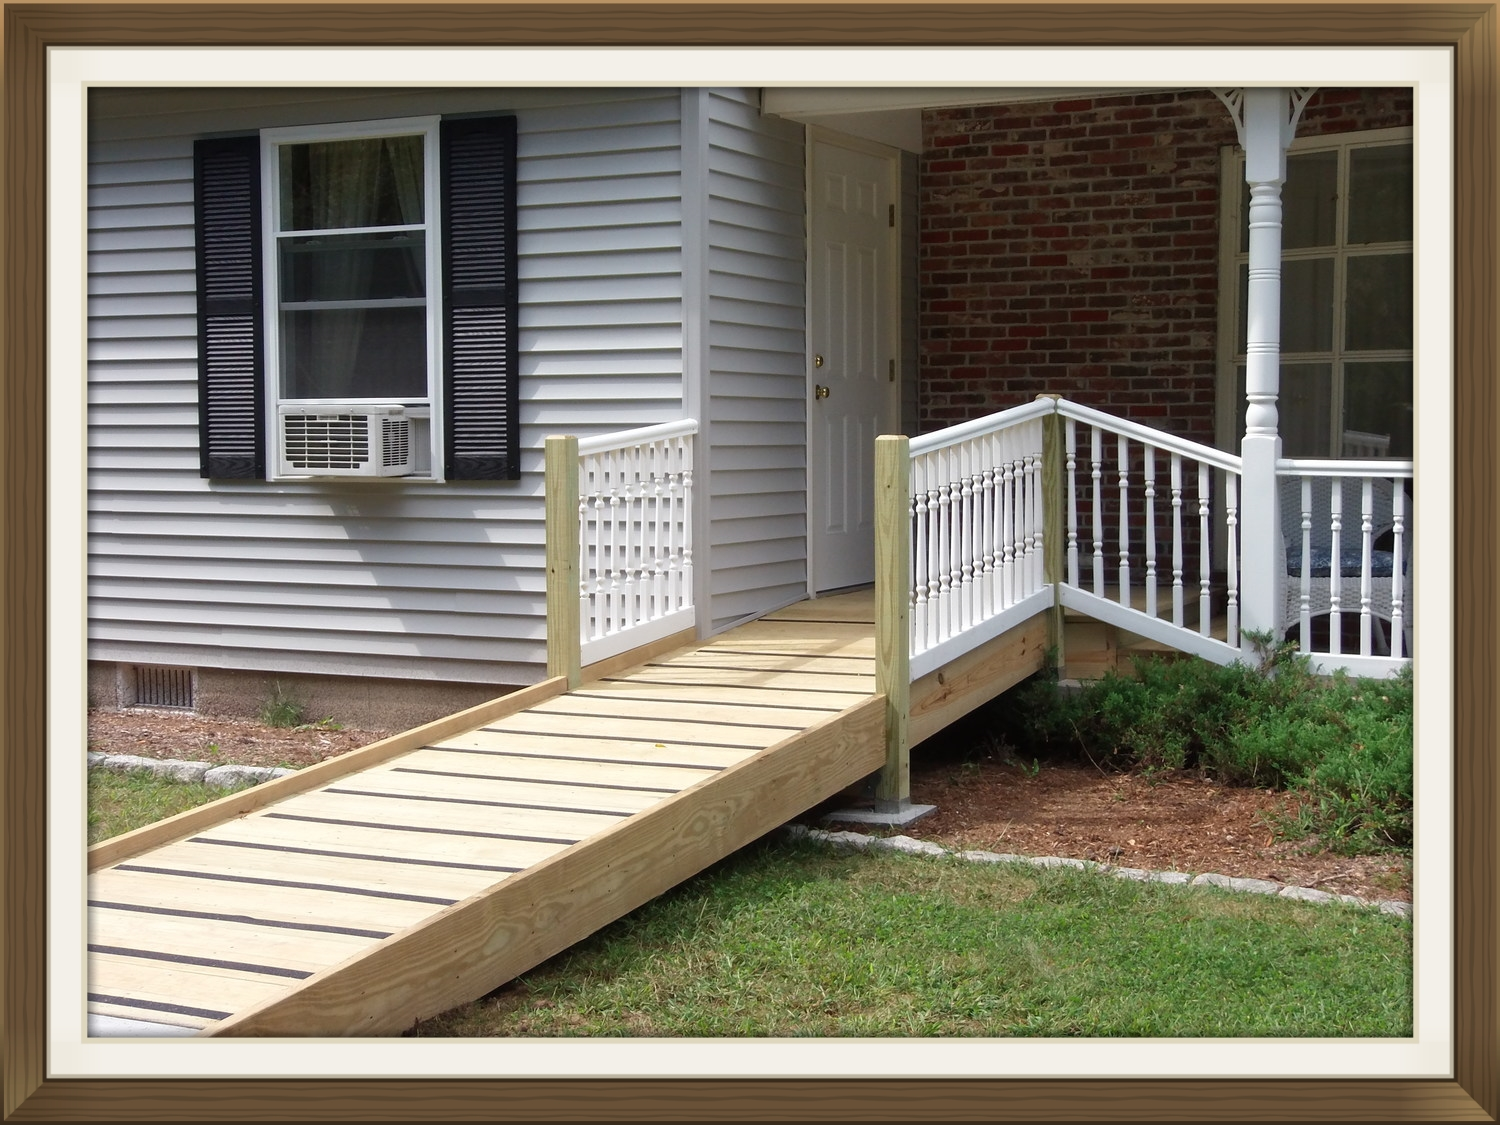 """""""With a disabled person in our home, we needed easy access to the outdoors. It was not possible without the ramp. The crew created a new doorway, a platform with a step-down to our  front porch  and a combination weathered wood and concrete ramp which conforms to residential code and allows easy access to the outdoors and to the driveway for transportation away from home.  This is the third project the company has done for us and each one has been done with care and consideration for our family needs.""""      Ginger N. -Peterborough, NH"""